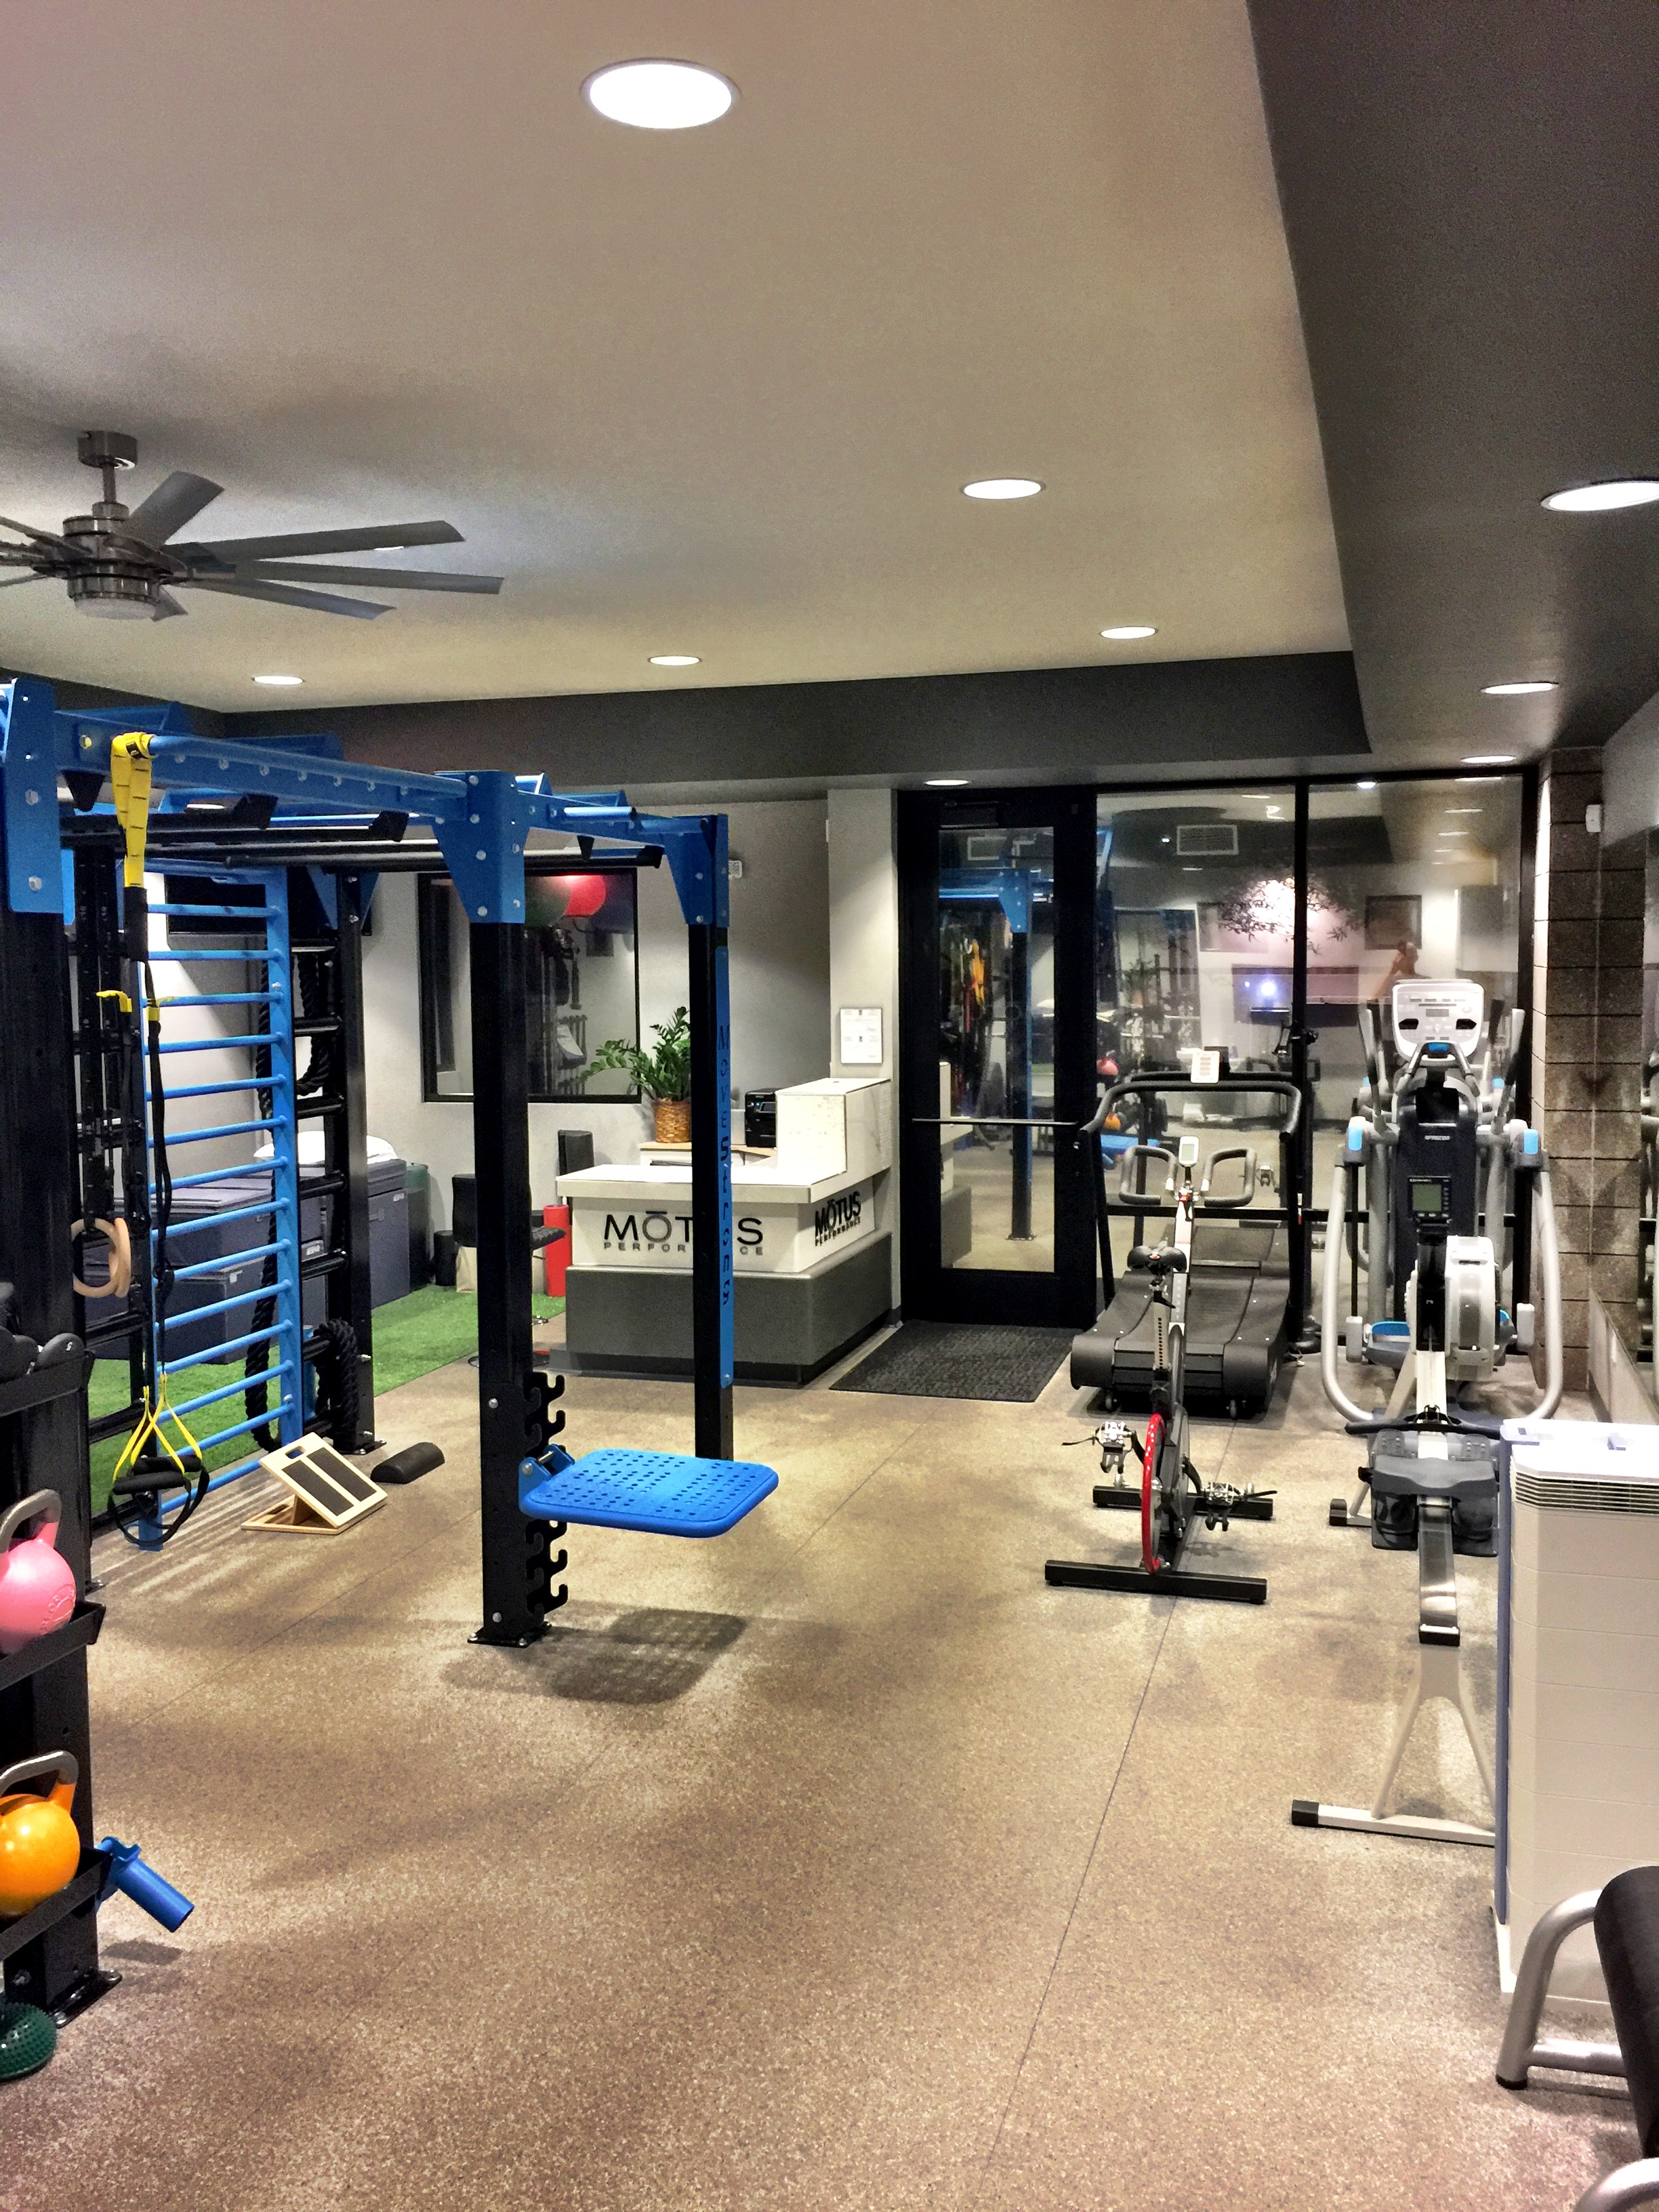 Narrow space ideal for MoveStrong customizable model